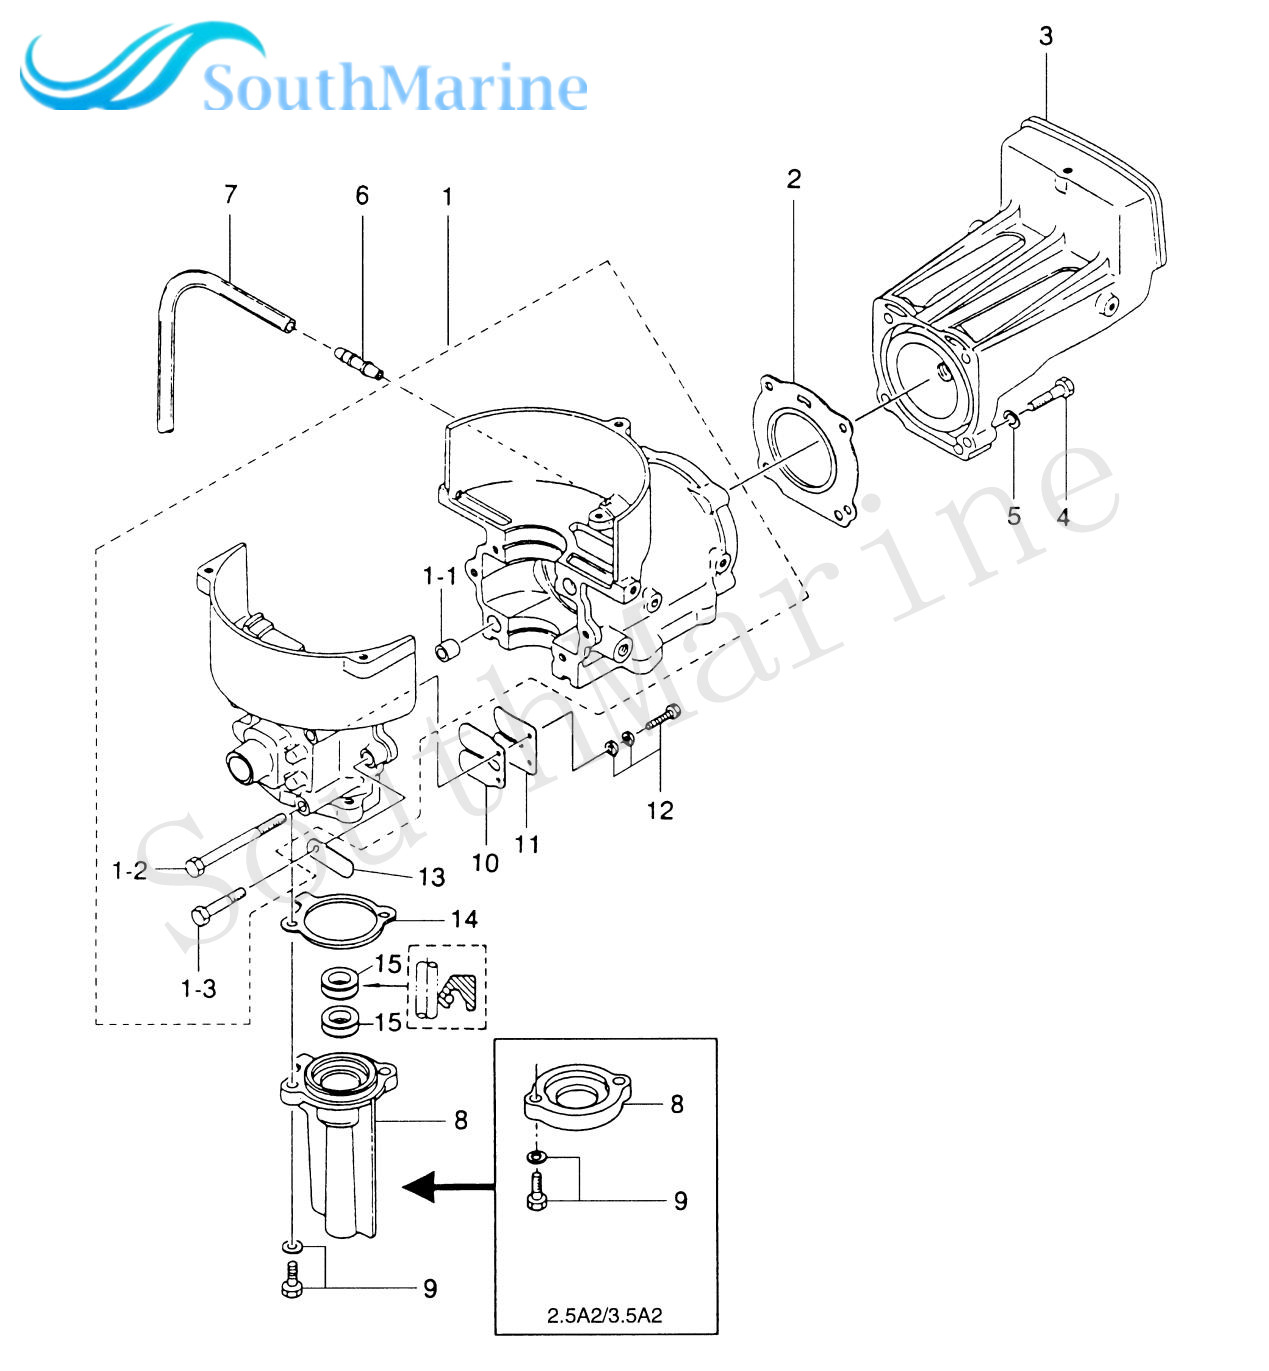 tohatsu outboard wiring diagram for for diagrams electrical sel john force outboard engines outboard engine 309 01005 1 30901 0051m cylinder head gasket for outboard engine 309 01005 1 30901 0051m cylinder head gasket for tohatsu nissan 2 stroke 2